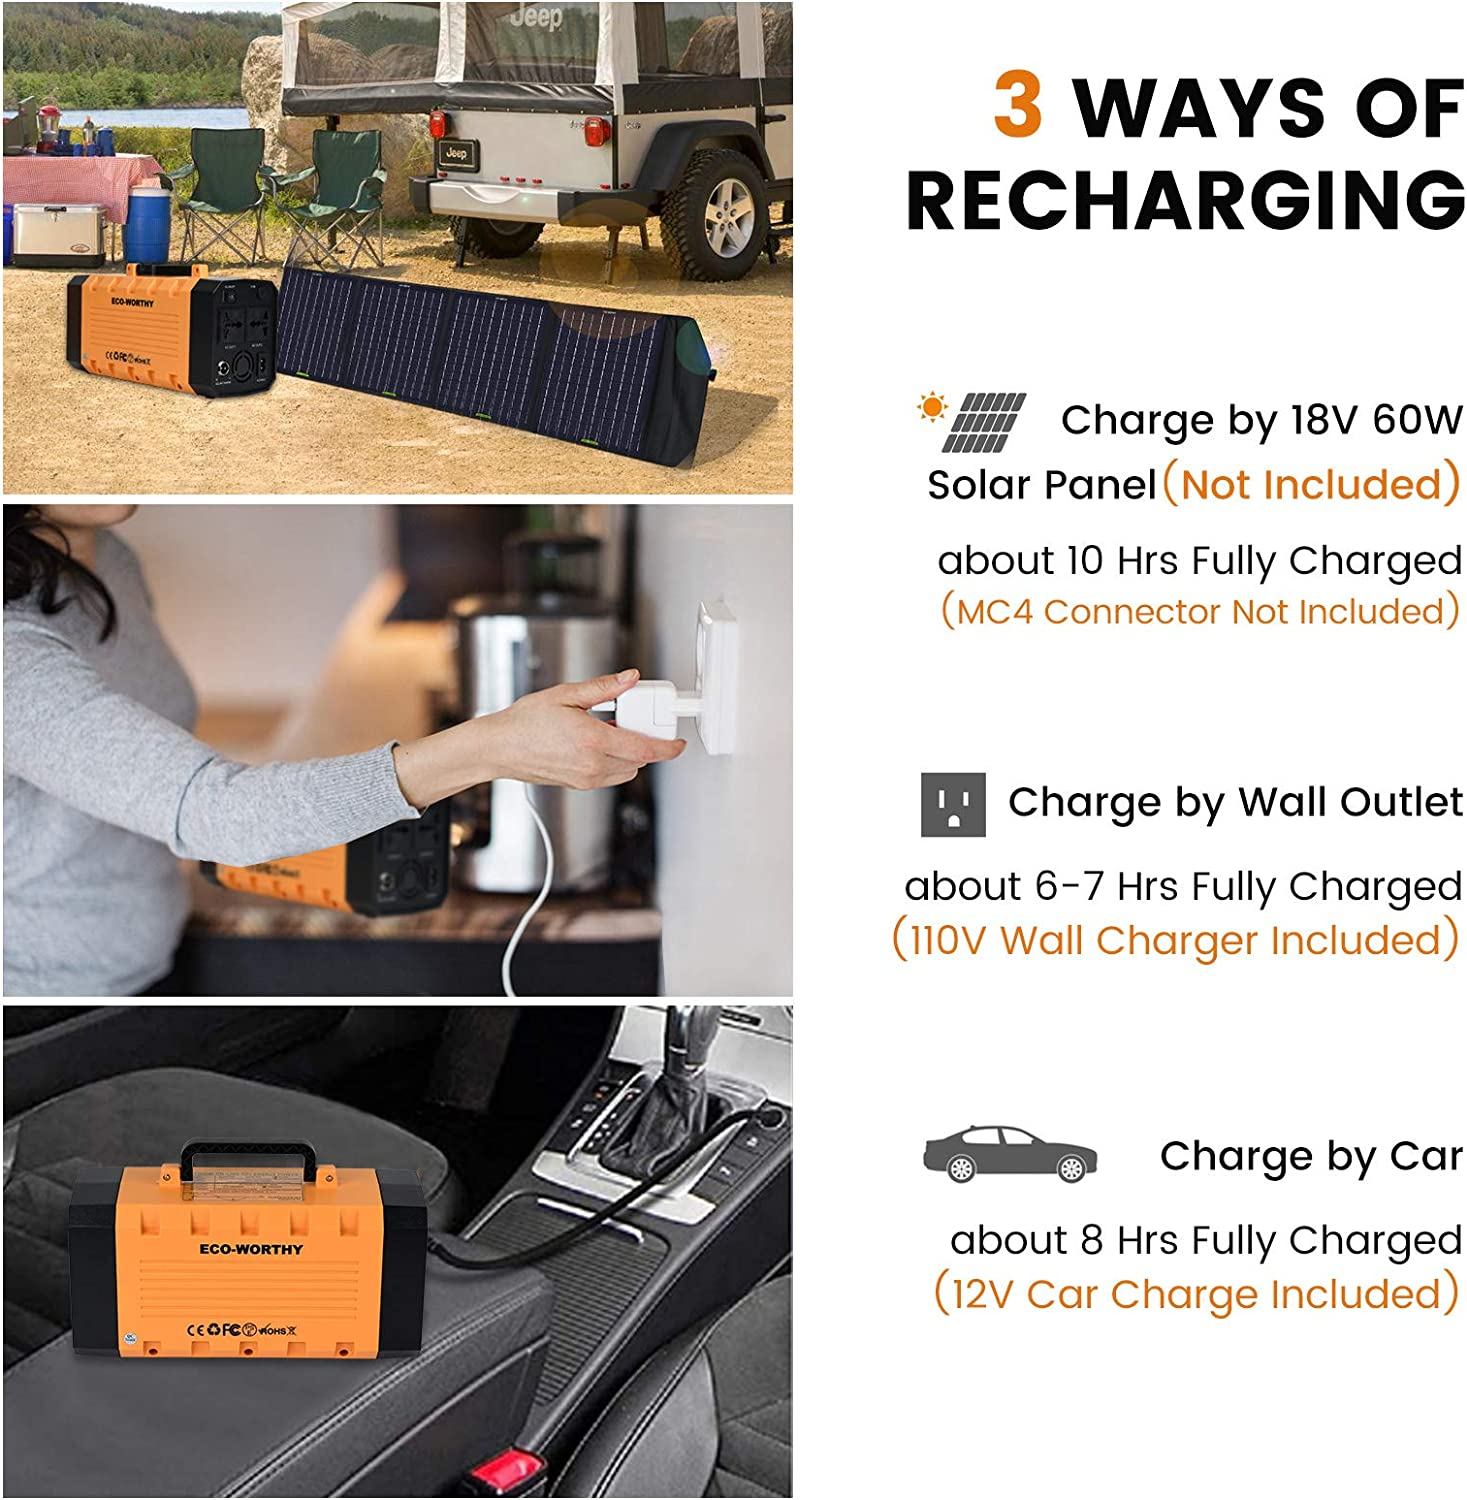 DC HOUSE 300Watt Portable Power Station 288Wh//78000mAh Solar Generator UPS Rechargeble Emergency Lithium Battery Backup Pure Sine Wave AC Outlet Power Supply with Flashlight for CPAP Camping Travel Laptop